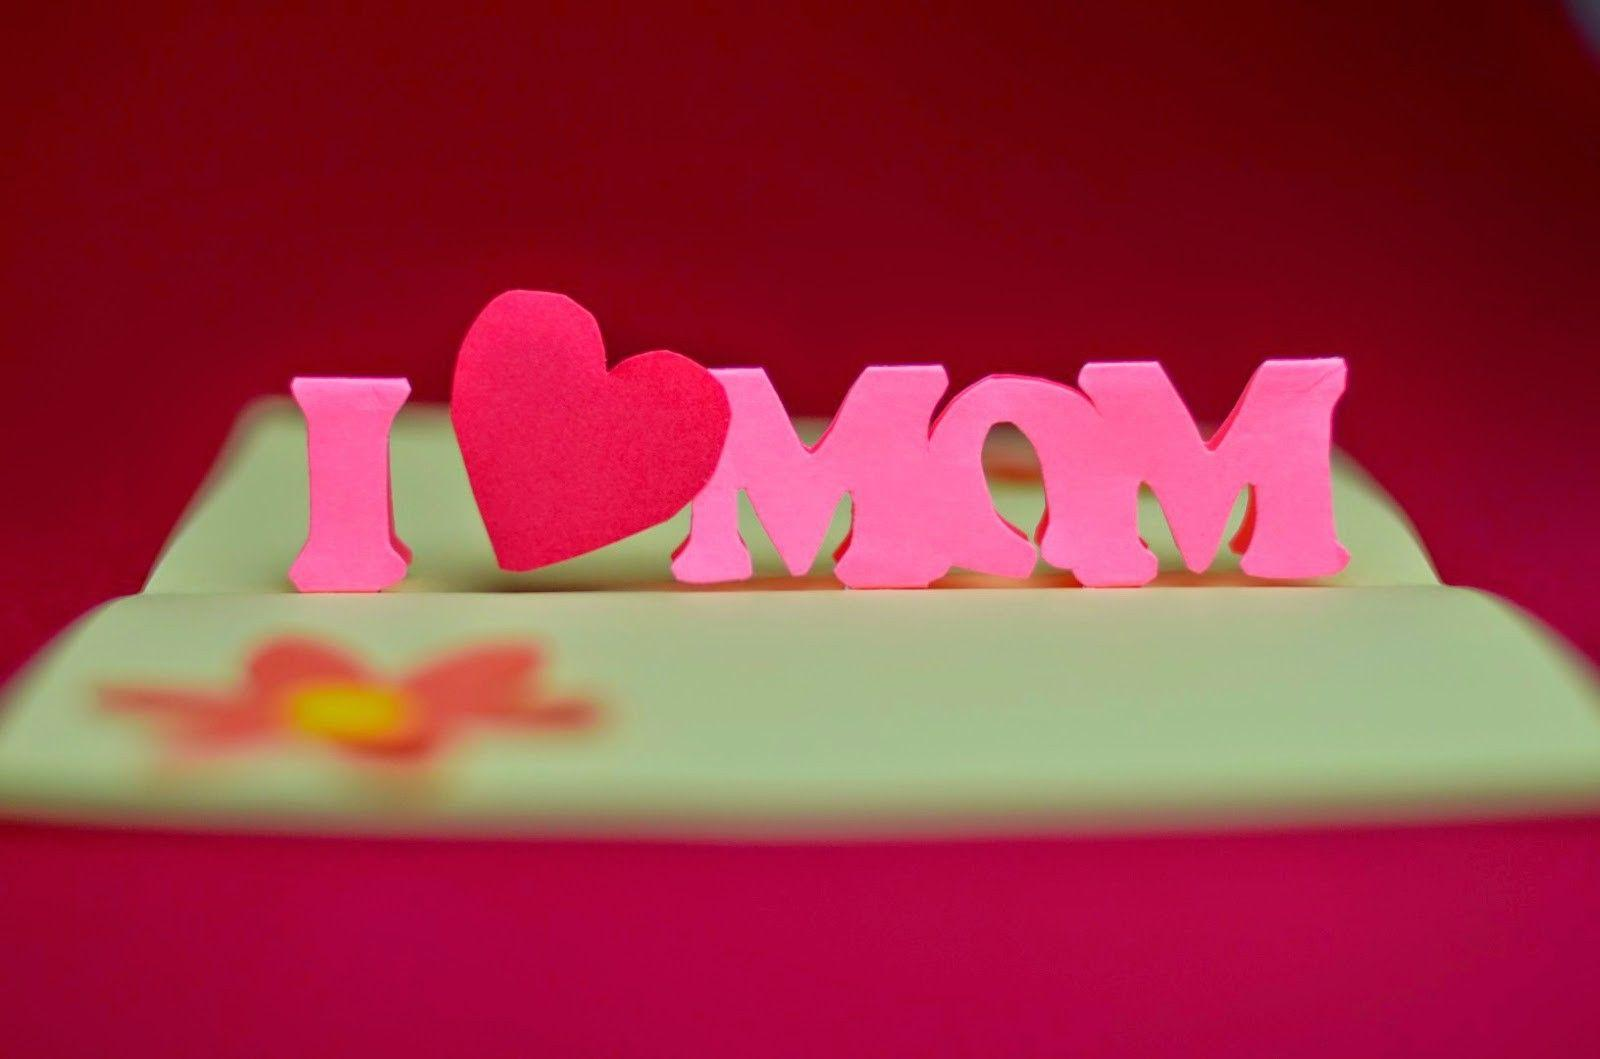 Happy Mothers Day Love Mom Wishes Hd Wallpaper